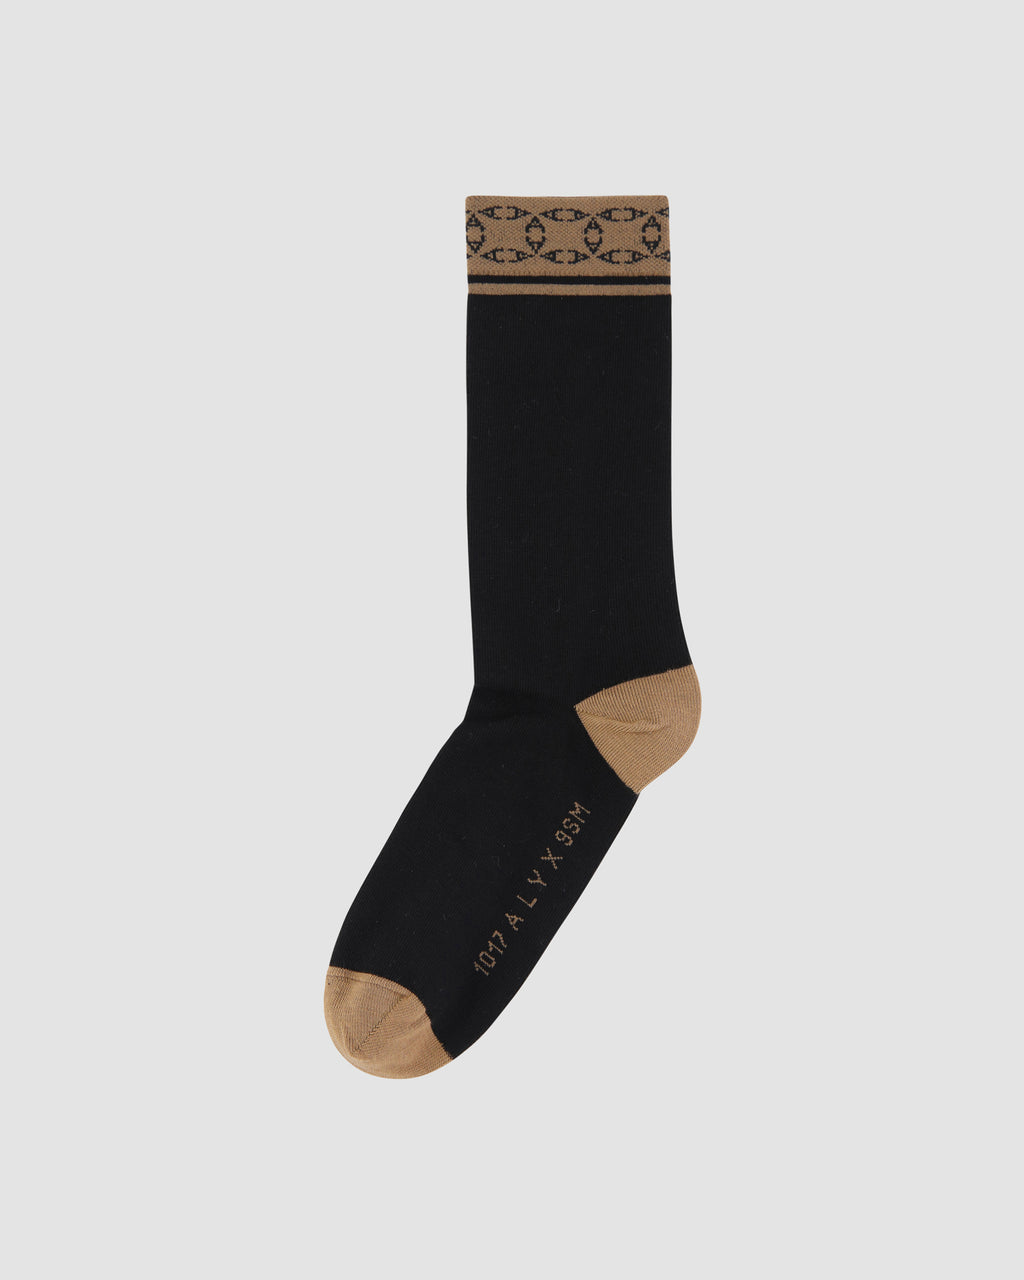 1017 ALYX 9SM | ALLOVER RIB SOCKS | Sock | Accessories, BLACK, Google Shopping, Man, S20, Socks, SS20, UNISEX, Woman